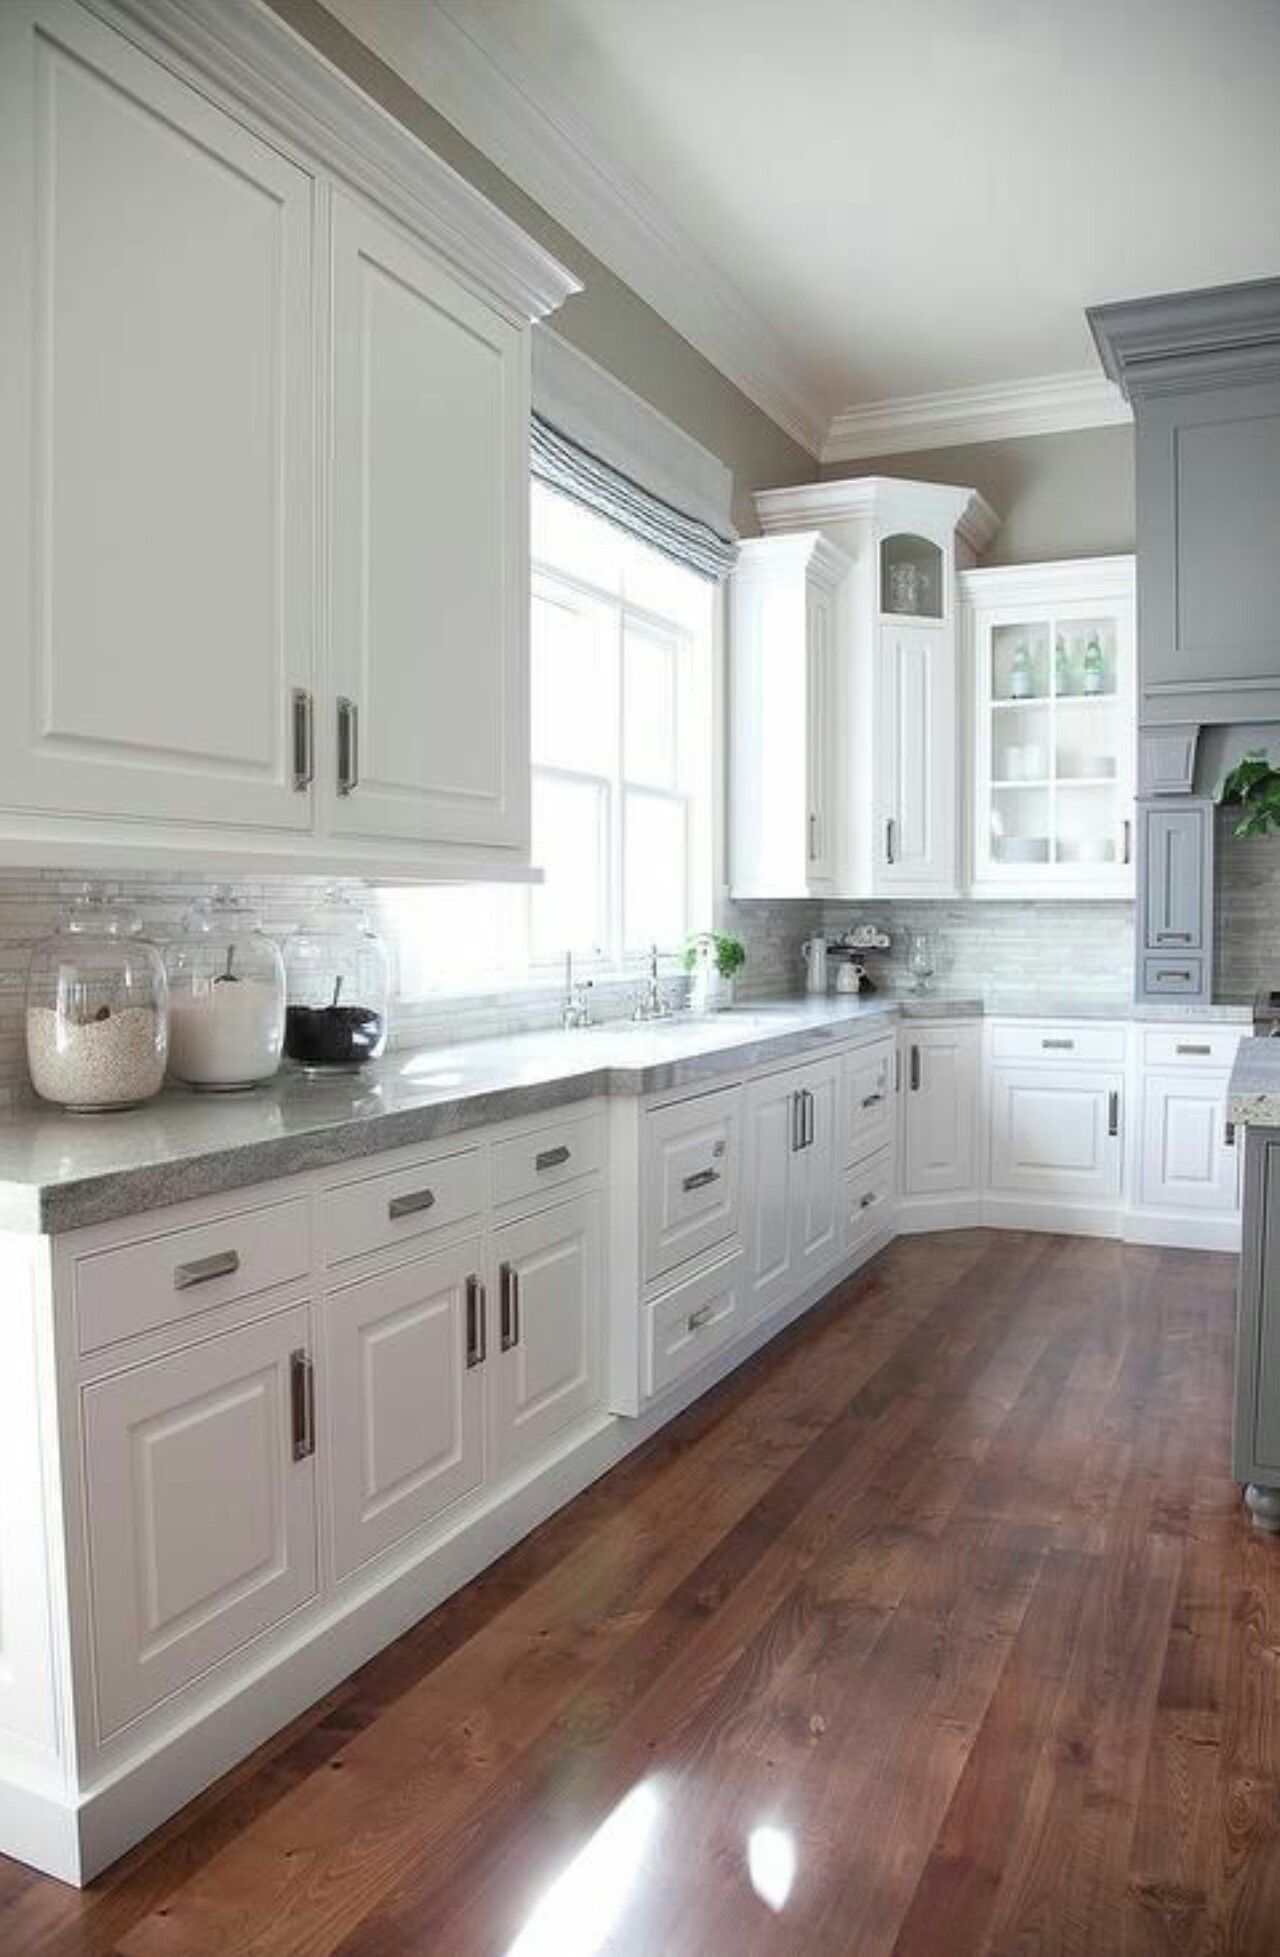 - White Cabinets, Grey Counter Tops, Light Grey Back Splash, Soft